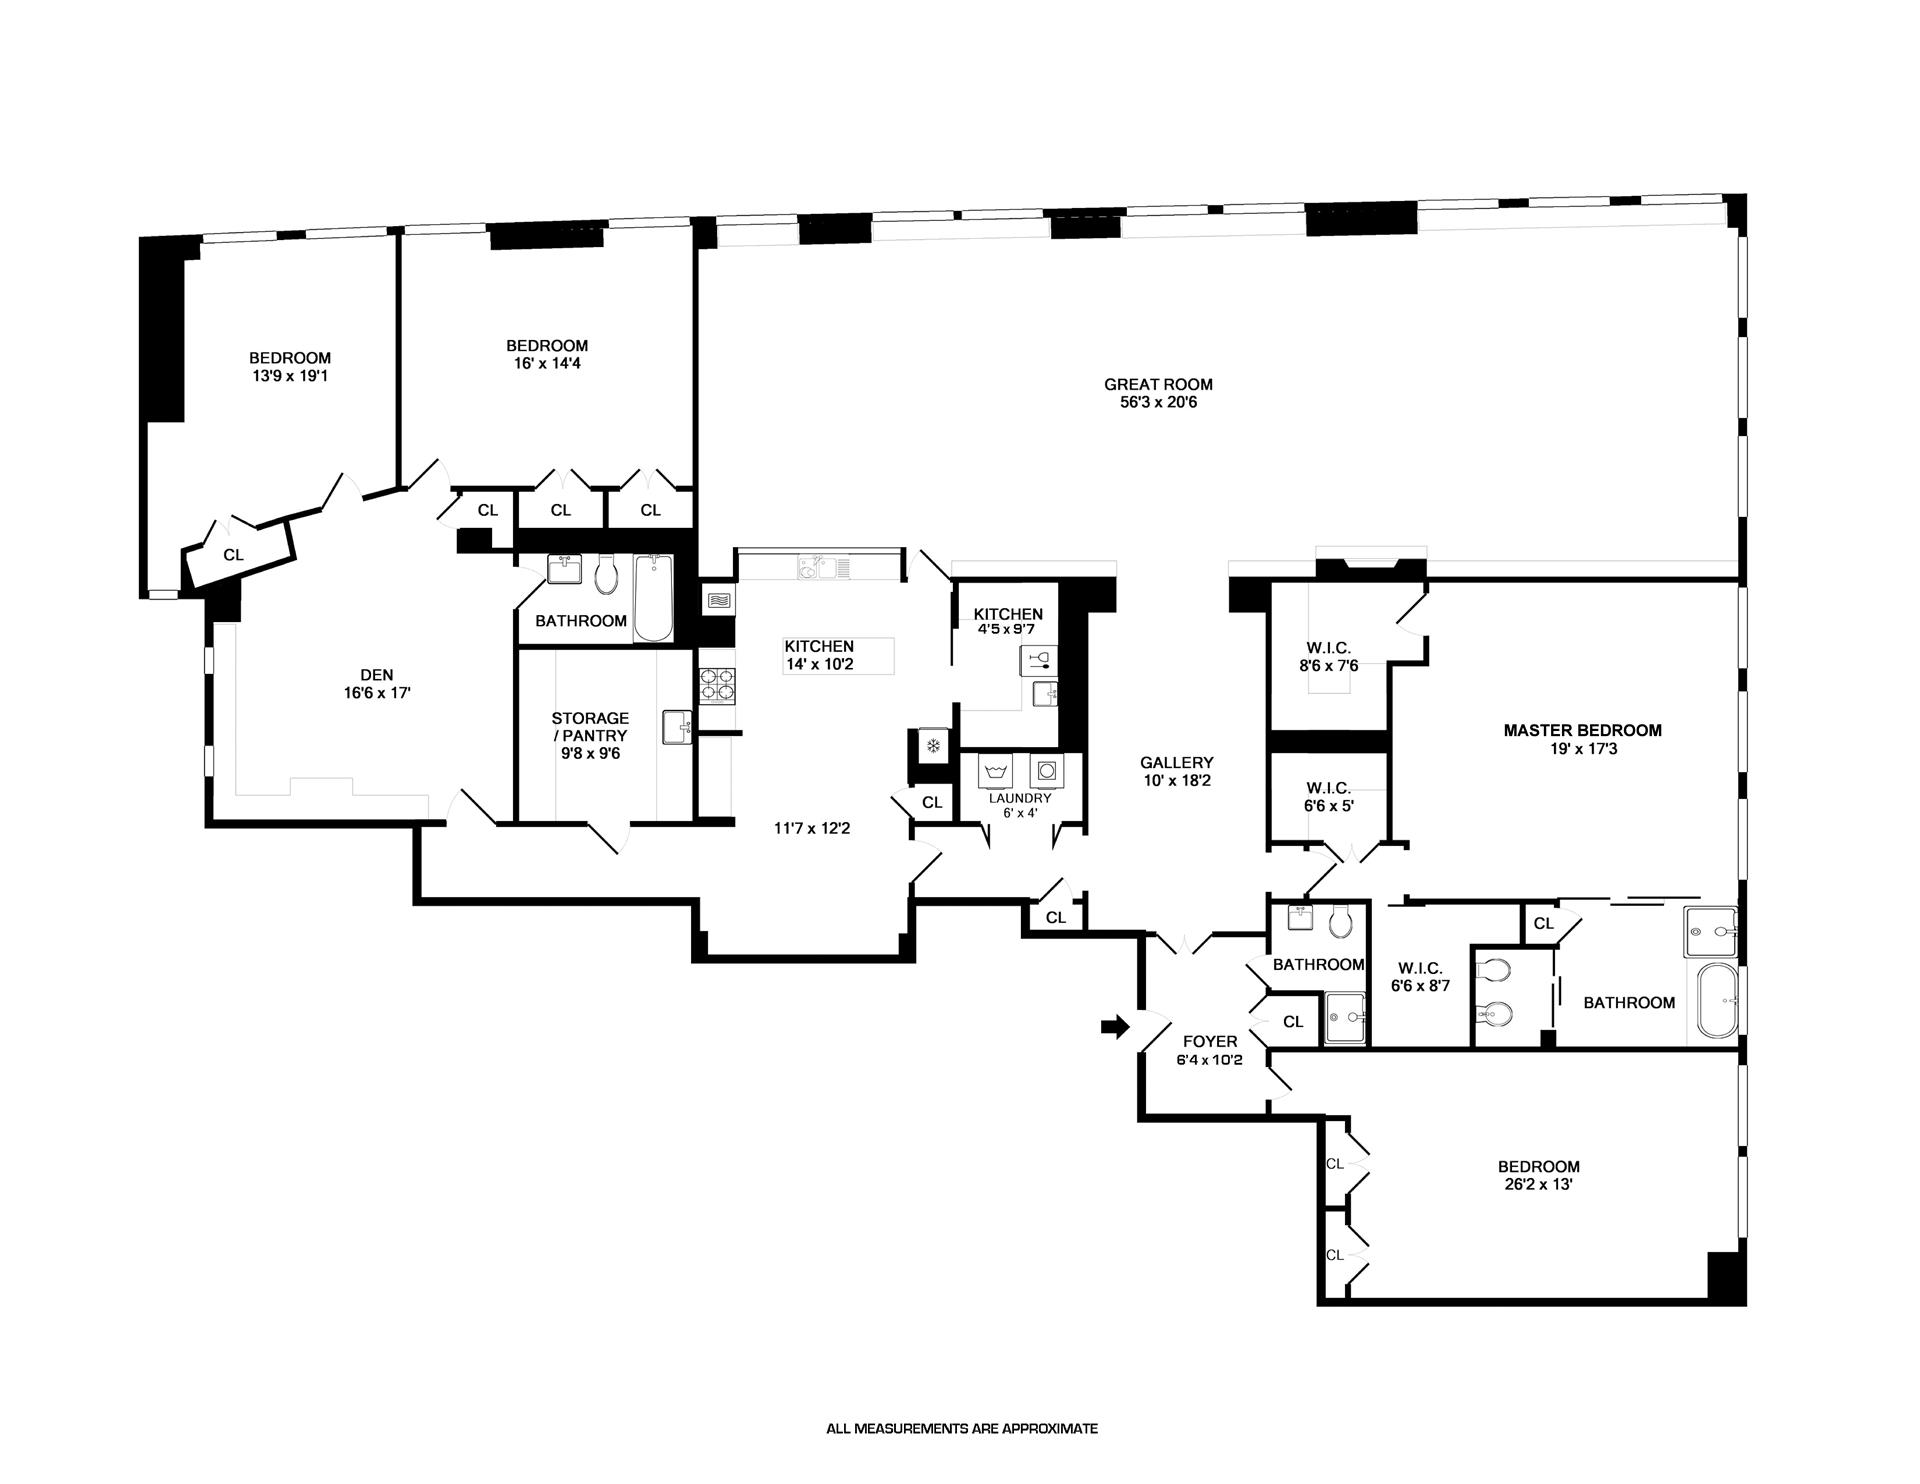 Floor plan of 10 Bleecker St, 4A - NoHo, New York